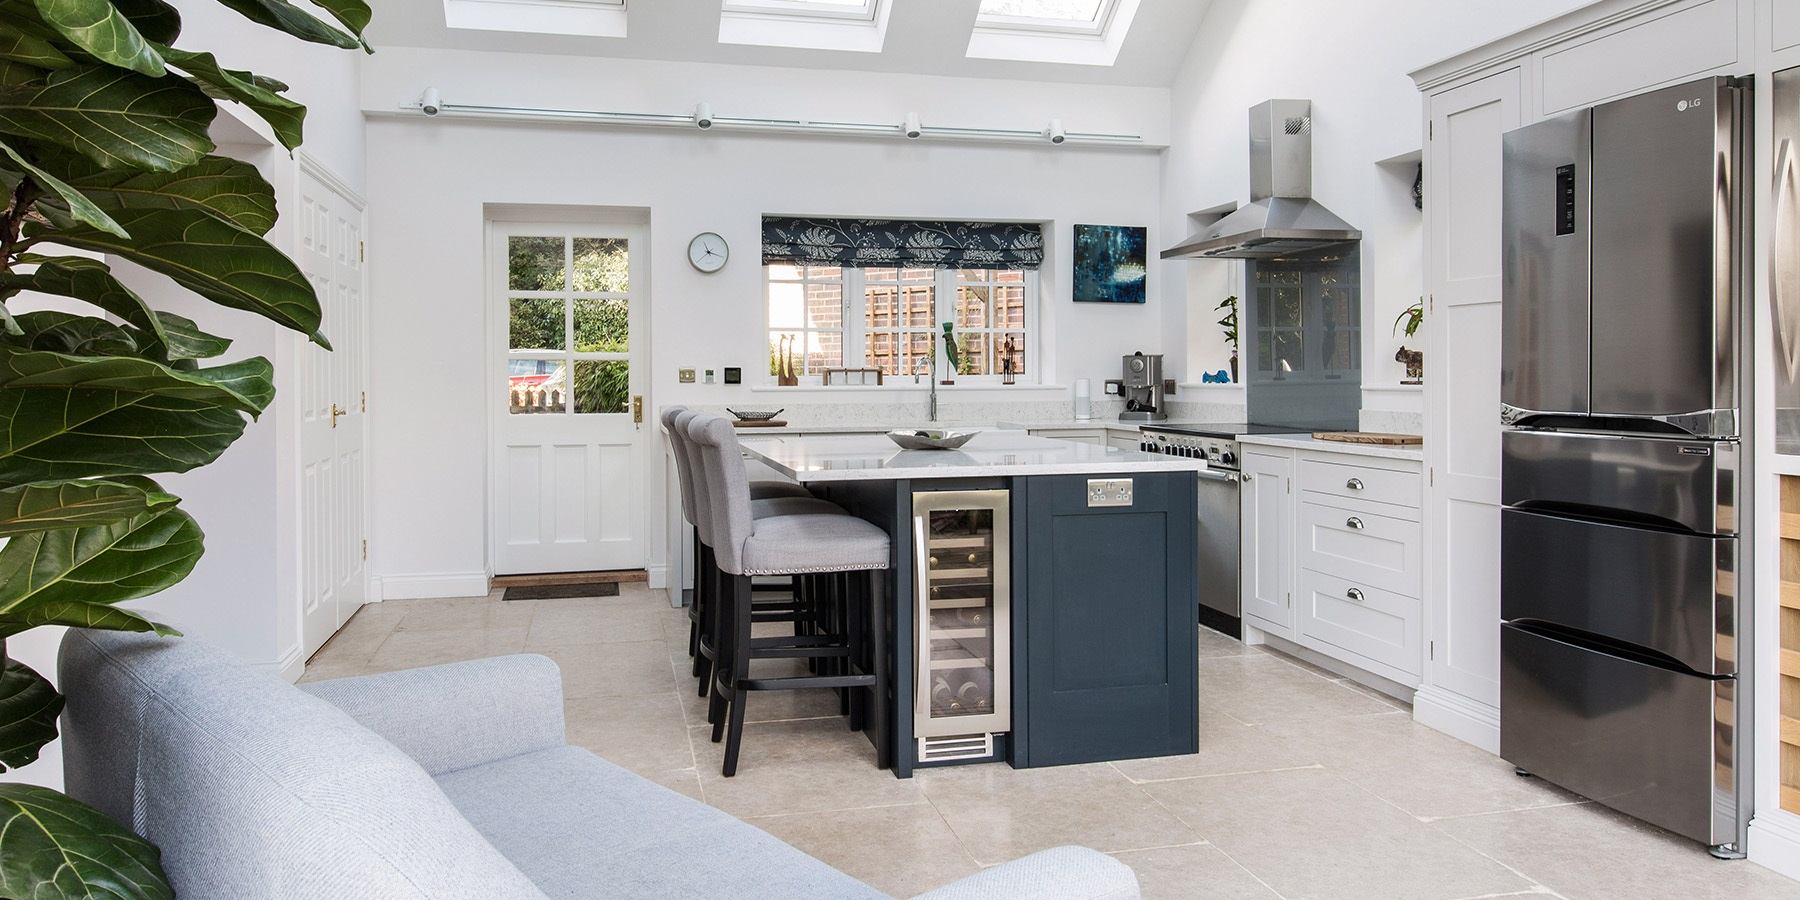 Bespoke kitchens, designed and handmade in the UK - Burlanes design and handmake bespoke kitchens of the highest quality. We have interior showrooms in Kent and Essex.